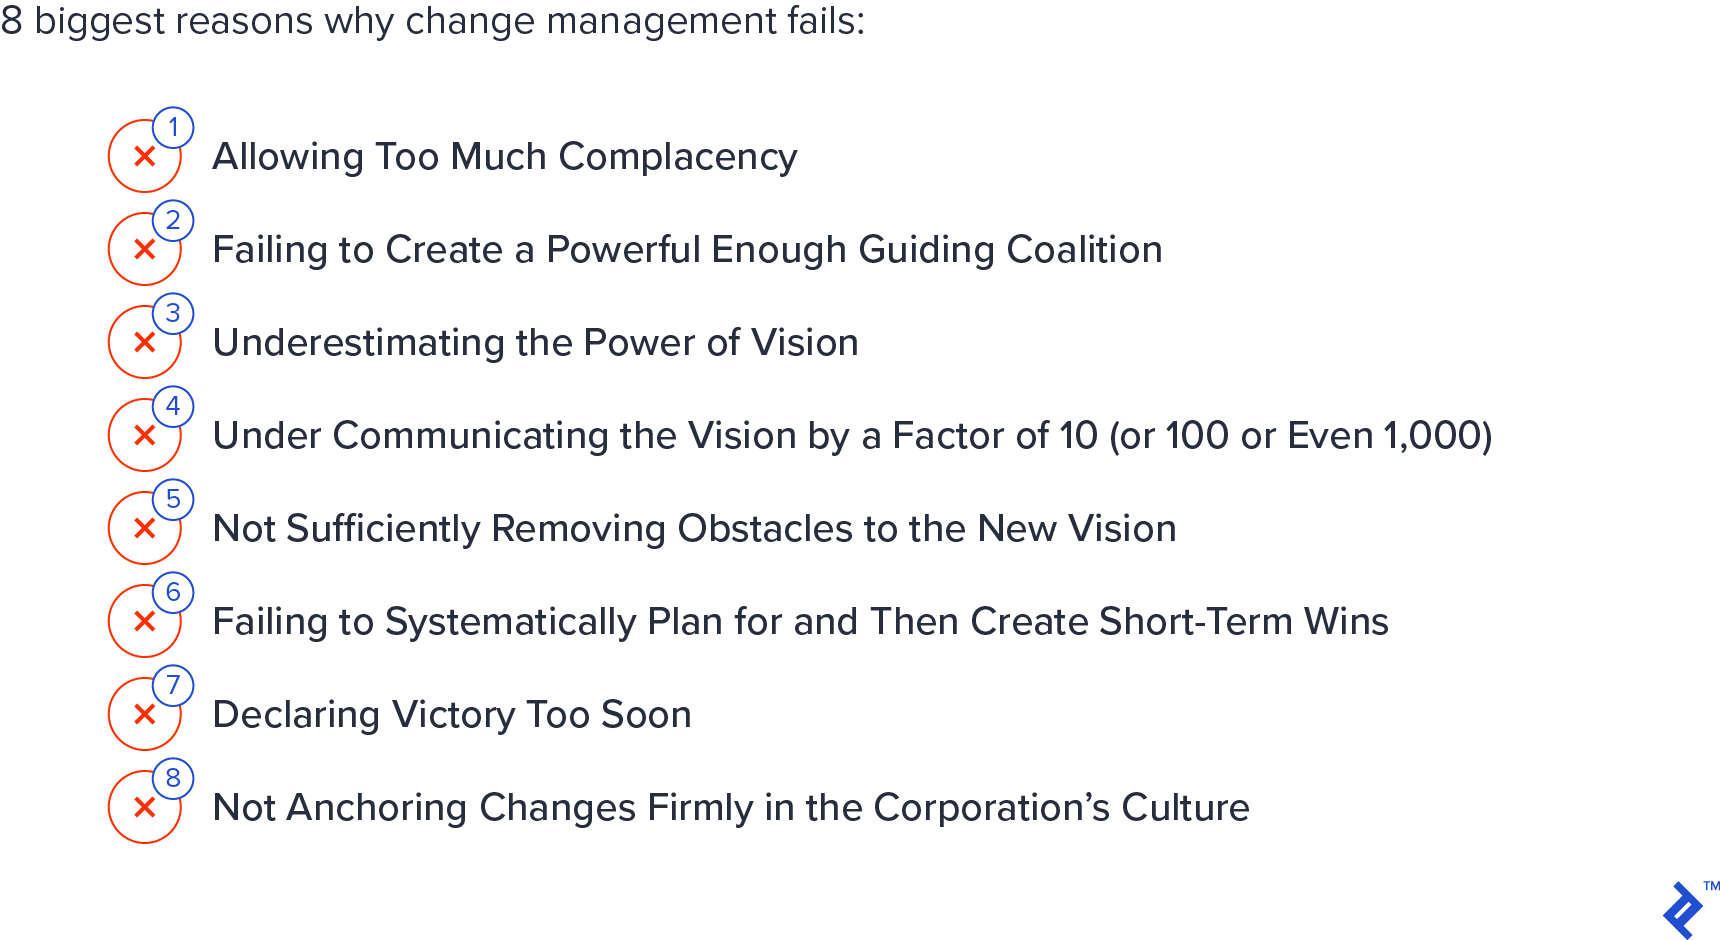 List of the eight biggest reasons why change management fails, including allowing too much complacency, failing to create a guiding coalition, underestimating the power of vision, under-communicating vision, not removing obstacles, failing for planning and creating milestones, declaring victory too soon, and not anchoring changes in corporate culture